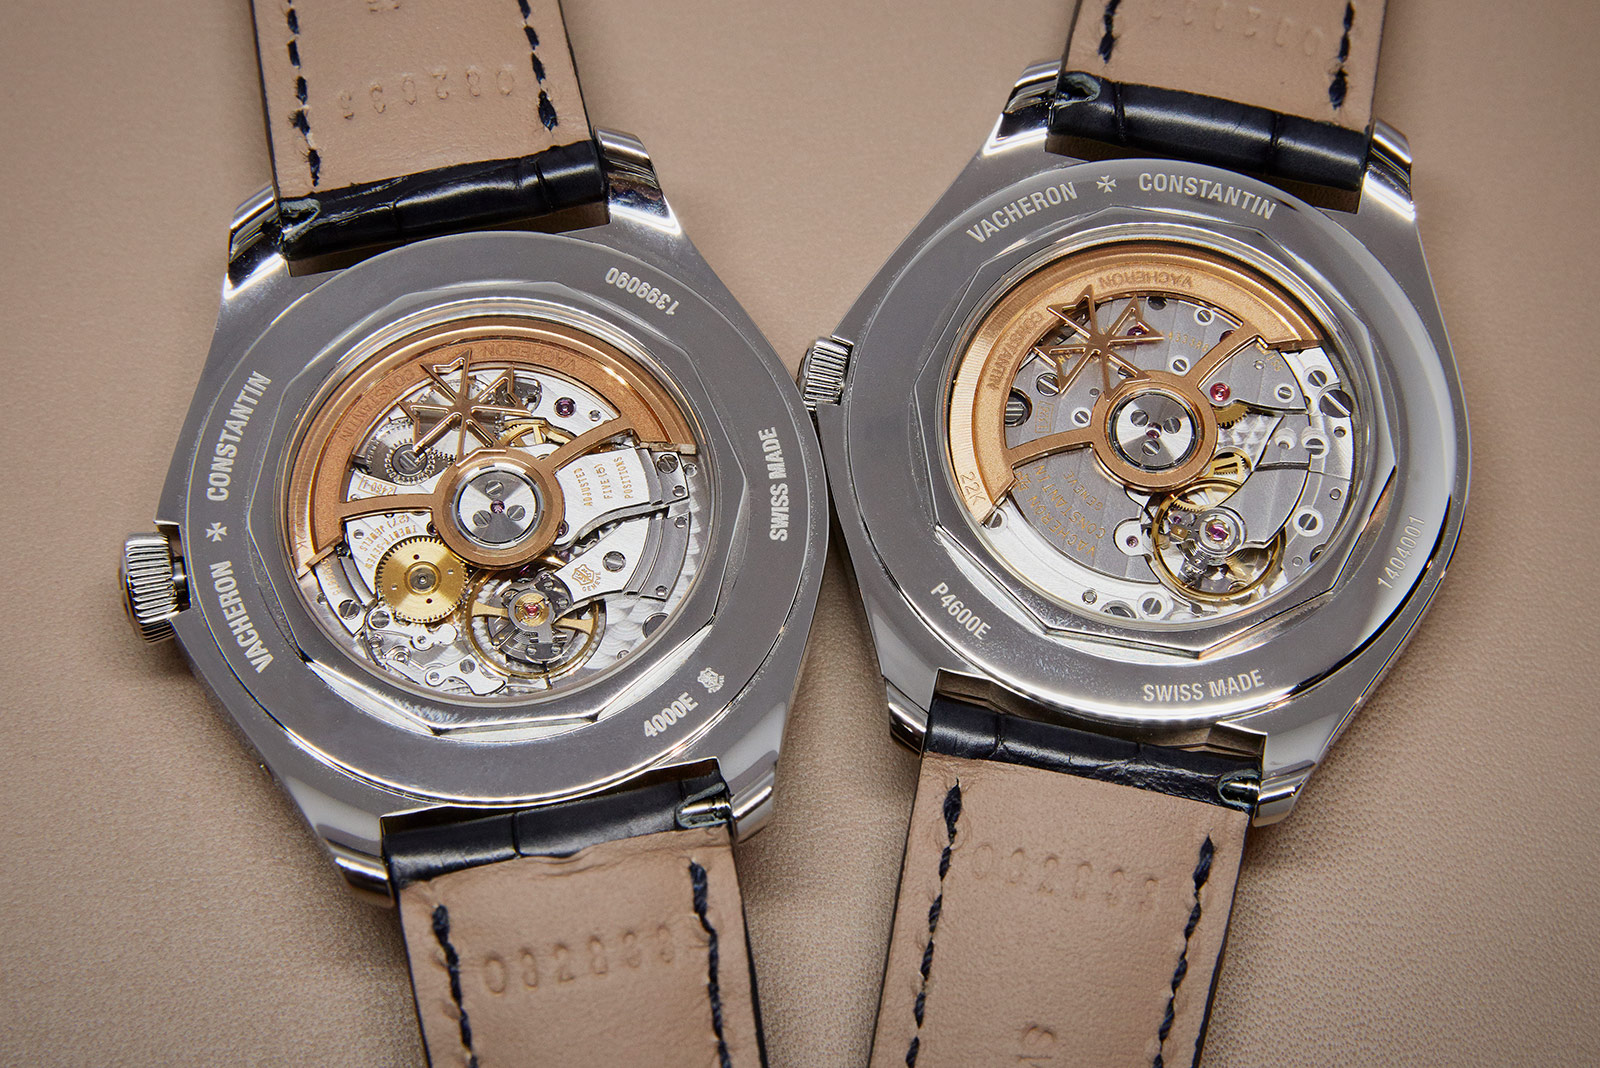 Vacheron Constantin Fiftysix movement comparison